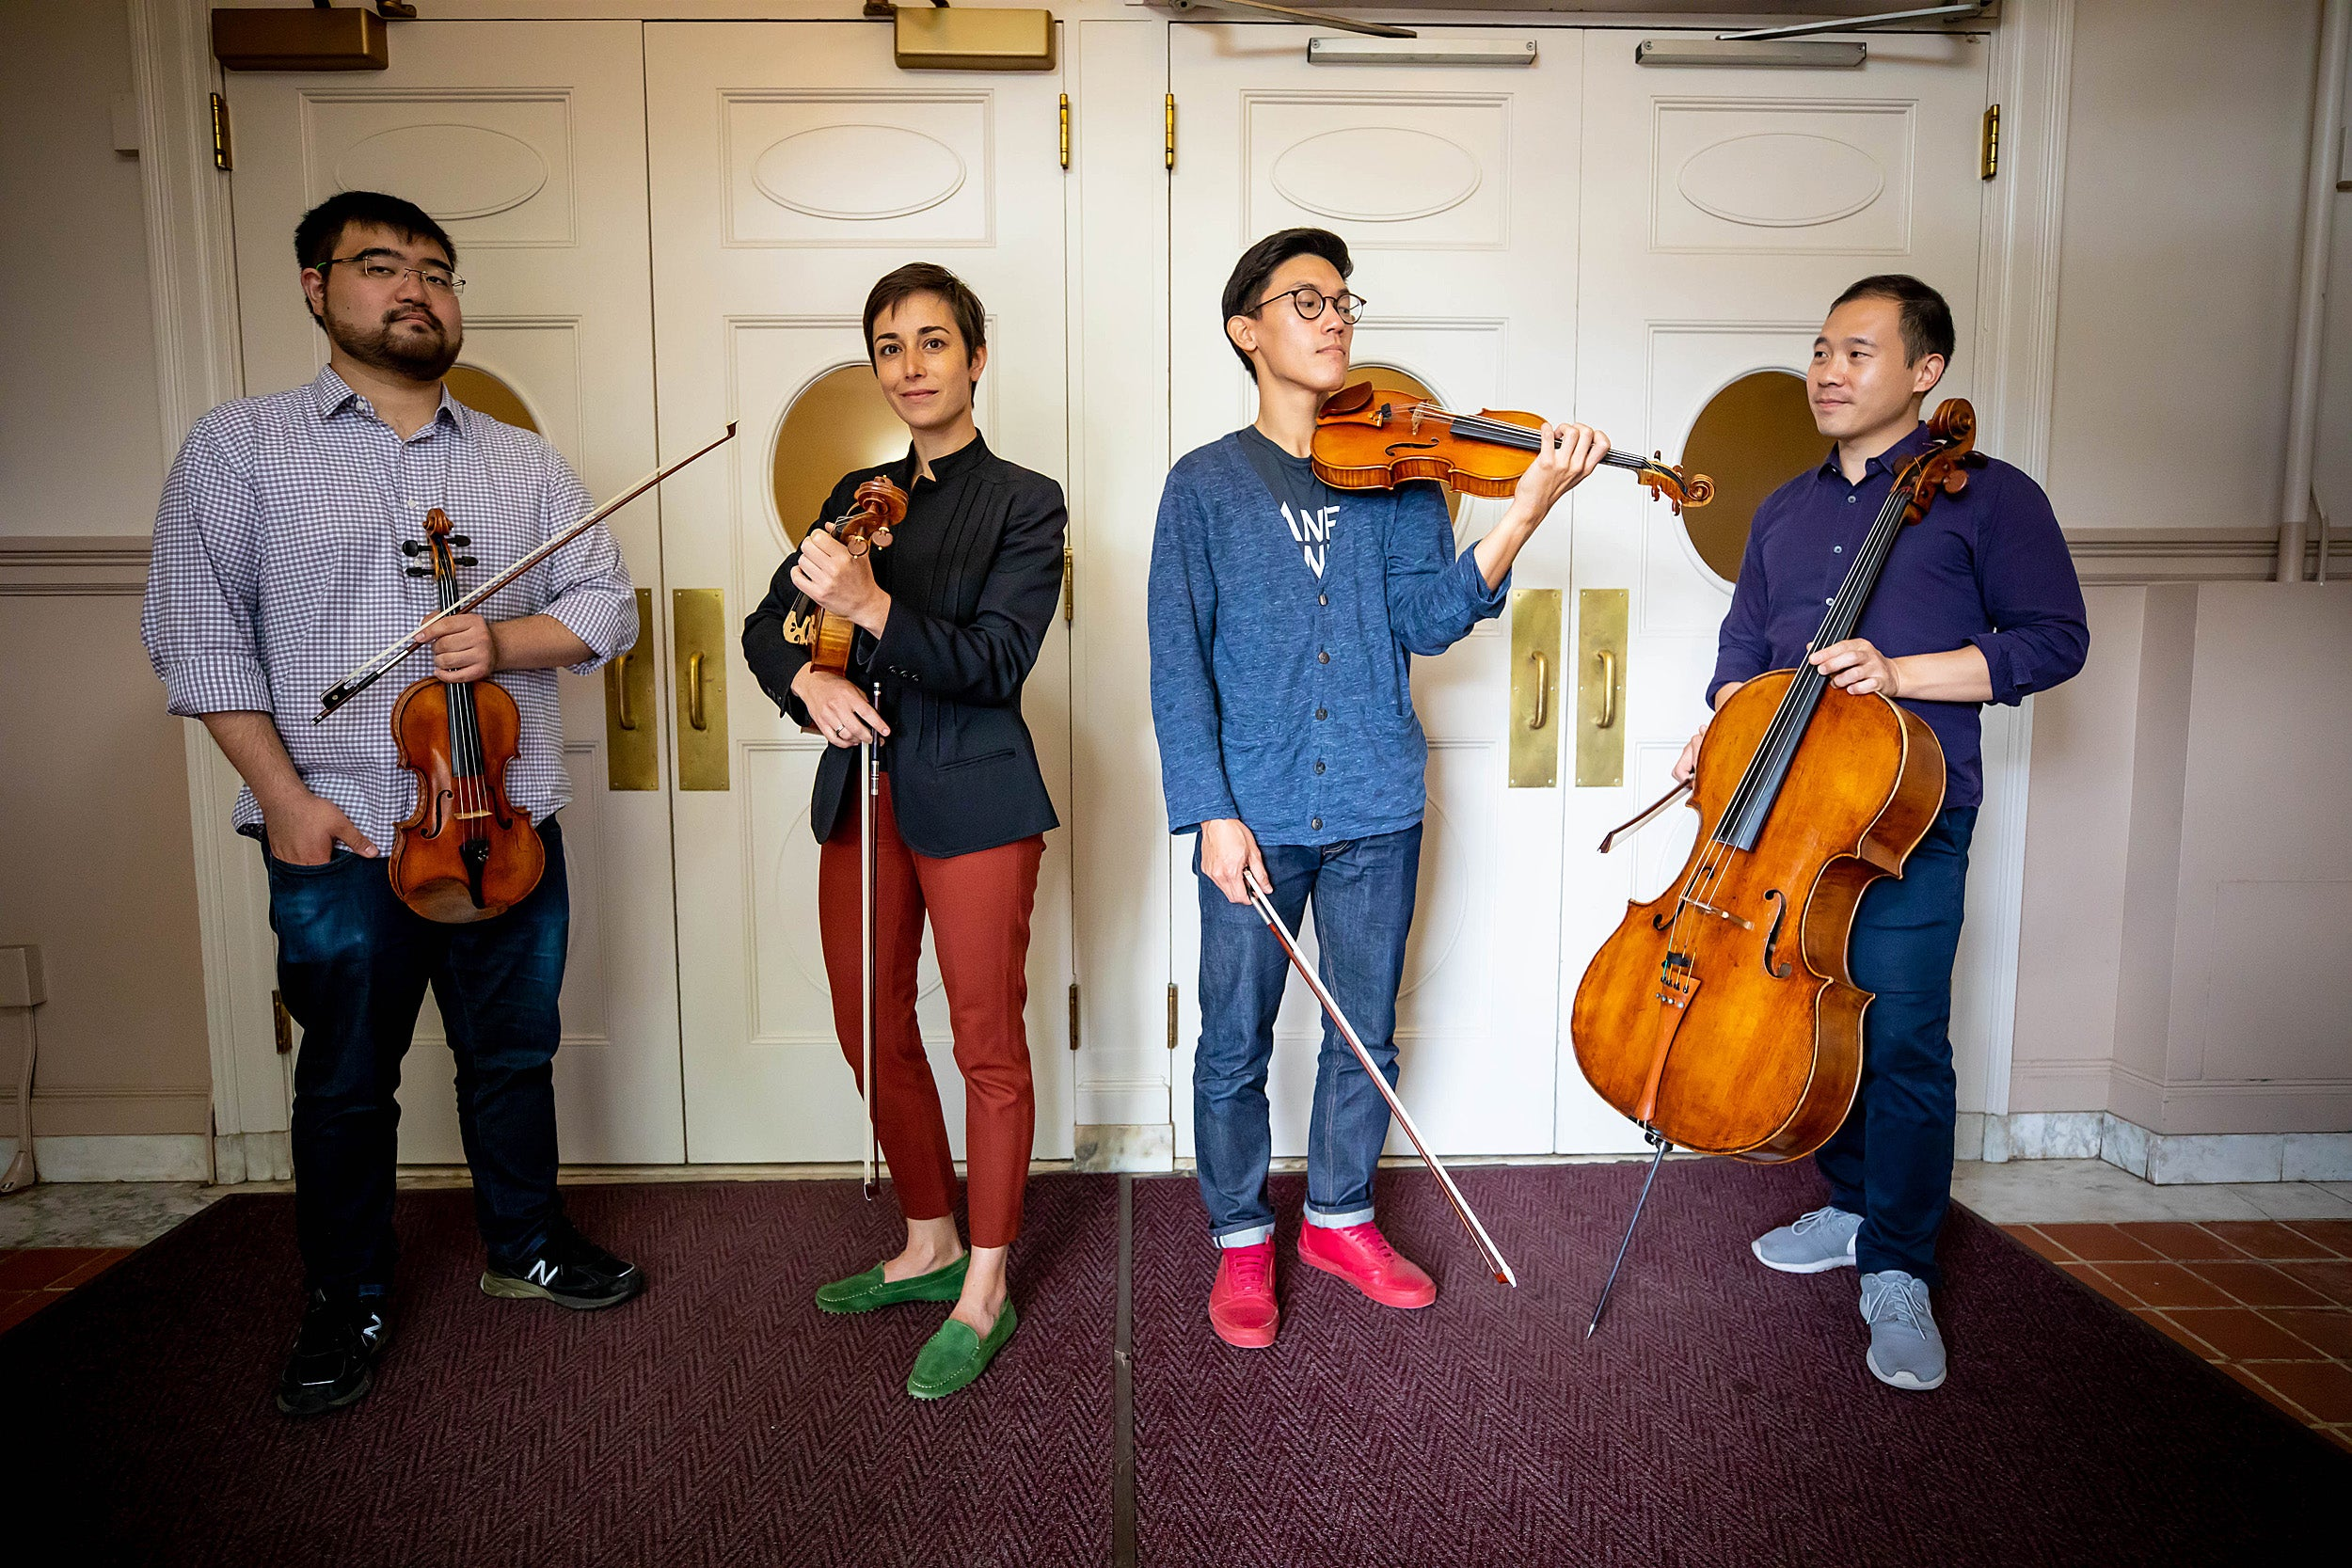 The Parker Quartet — Ken Hamao (from left), Jessica Bodner, Daniel Chong, and Kee-Hyun Kim — have been Blodgett Artists-in-Residence at Harvard since 2014.